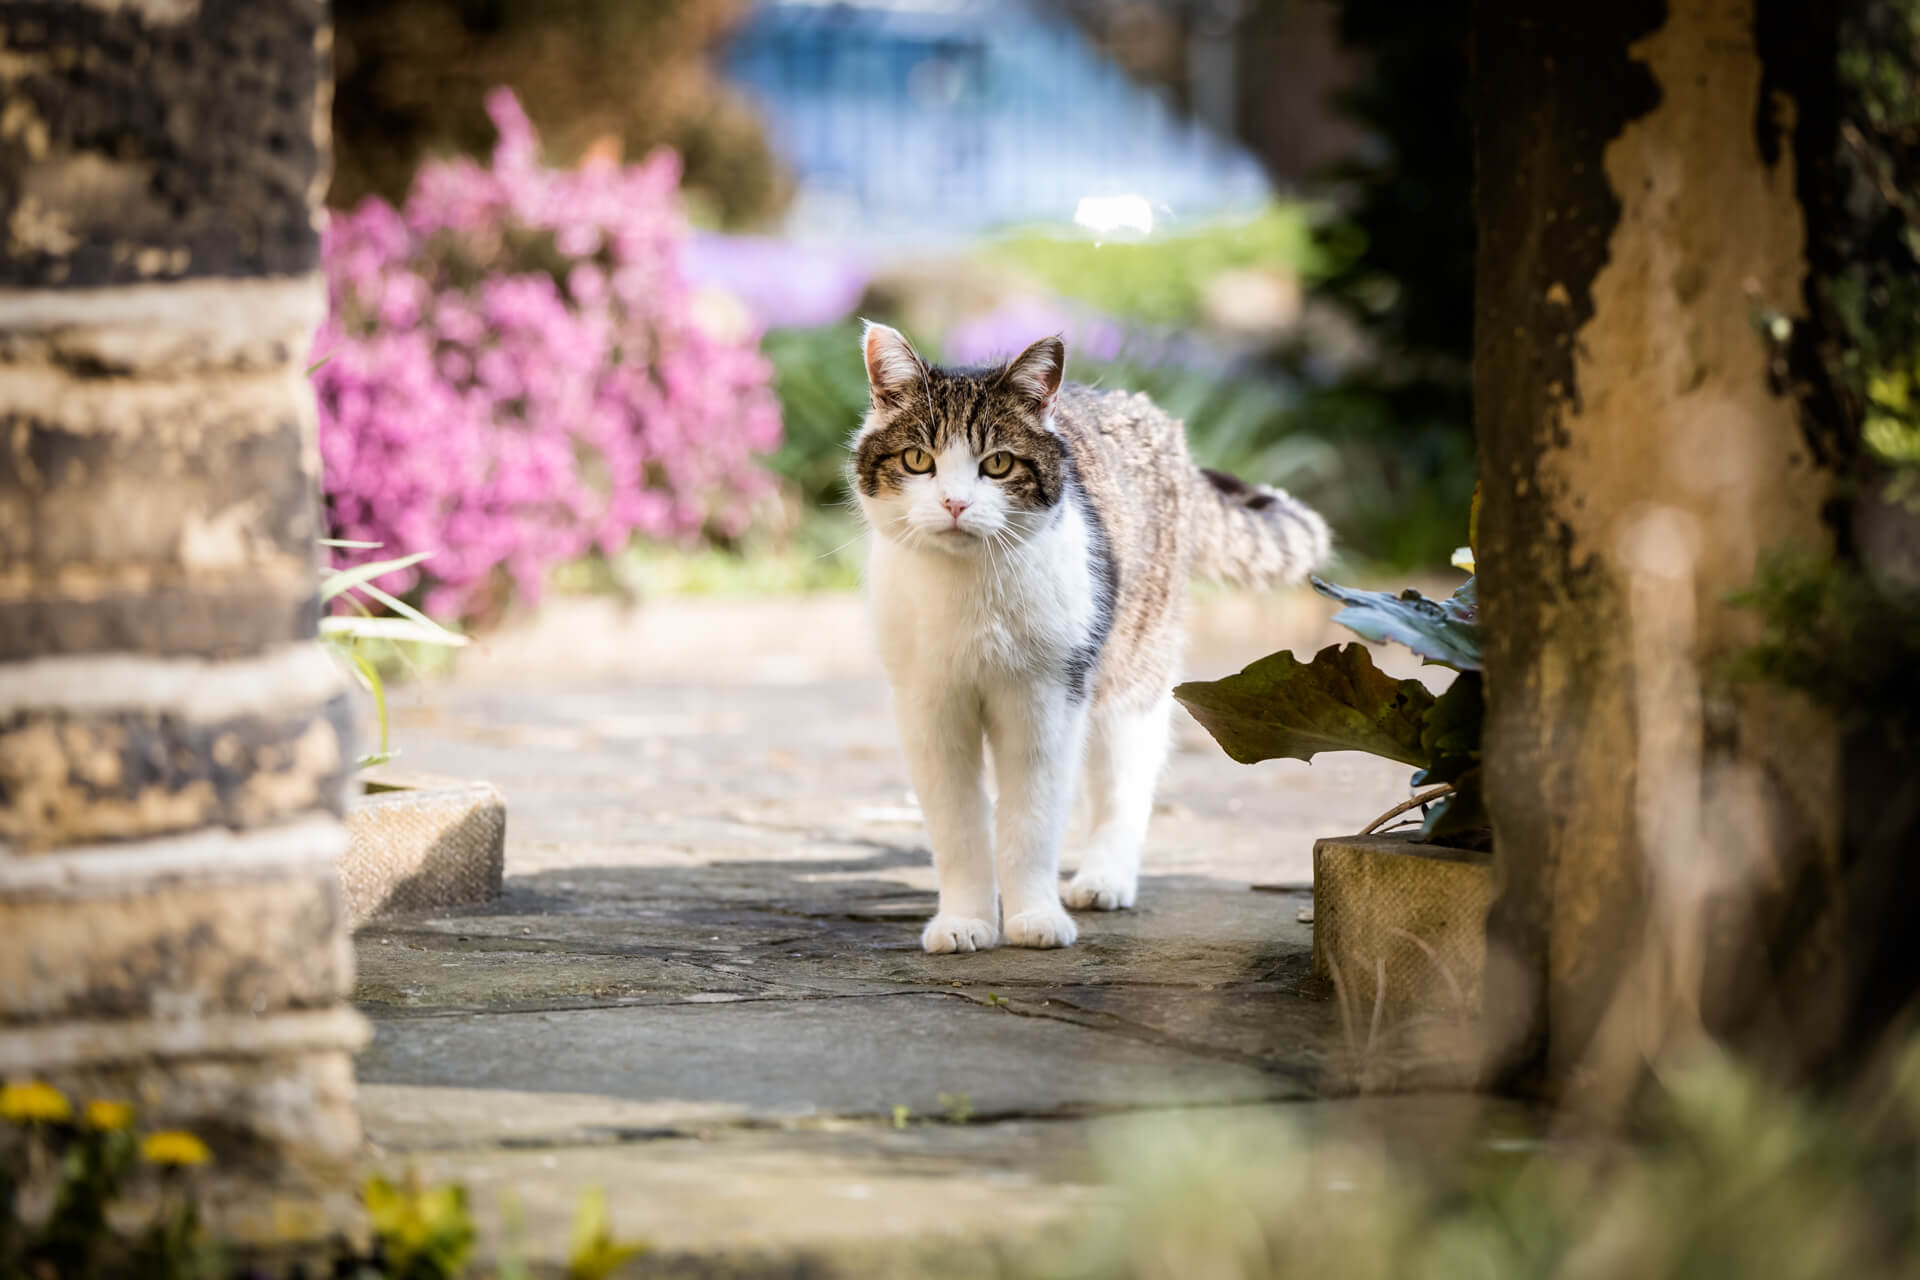 cat standing on some paving stones